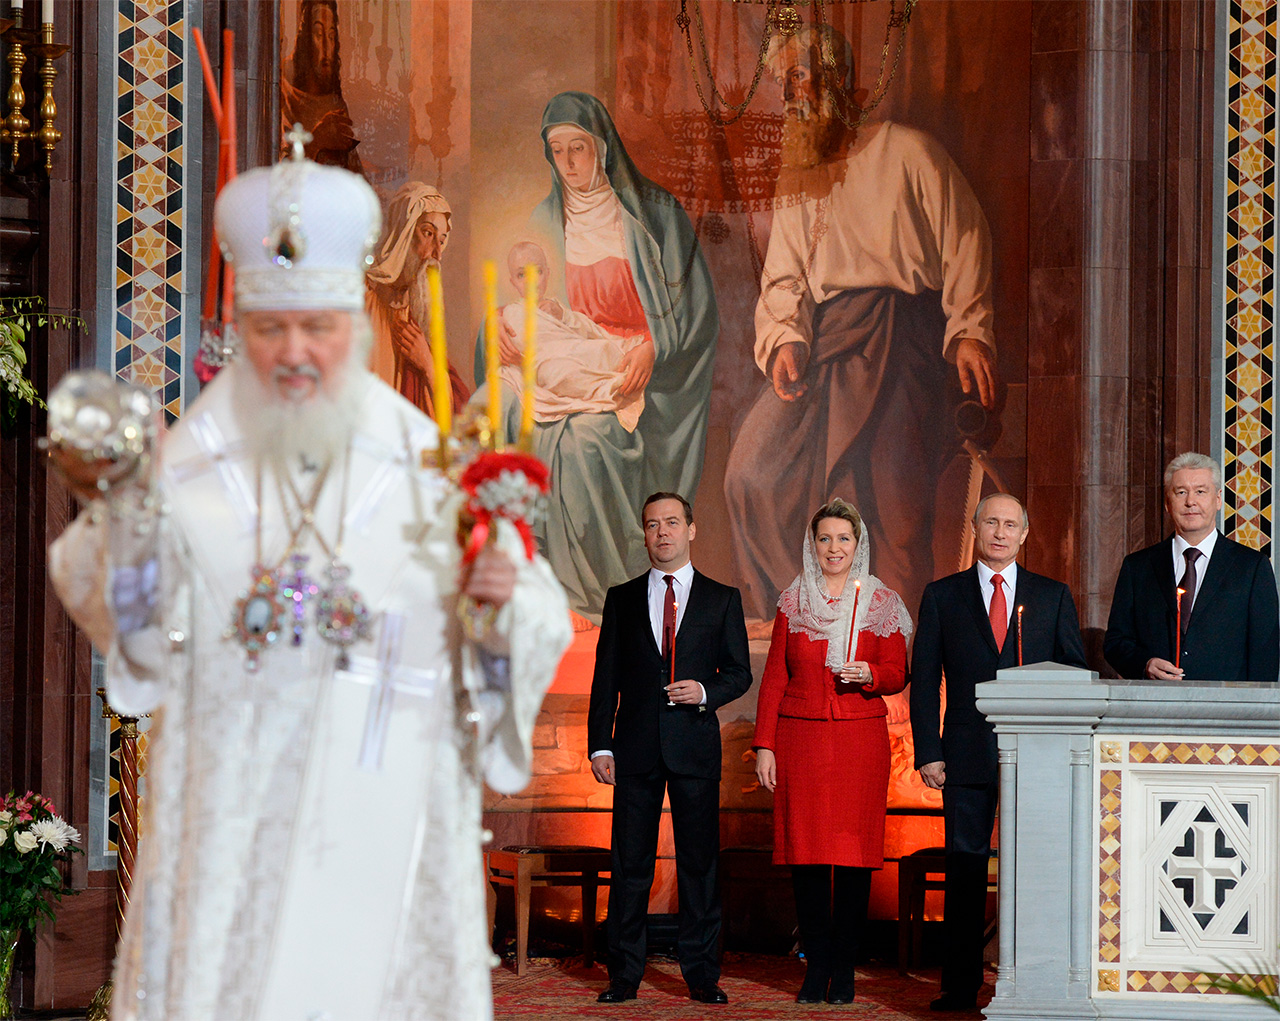 President Vladimir Putin, Prime Minister Dmitry Medvedev with wife Svetlana and Moscow Mayor Sergei Sobyanin attends the Easter service at the Cathedral of Christ the Saviour in Moscow. Foreground, left: Patriarch of Moscow and All Russia Kirill, April 12, 2015. / Photo: Sergey Pyatakov/RIA Novosti